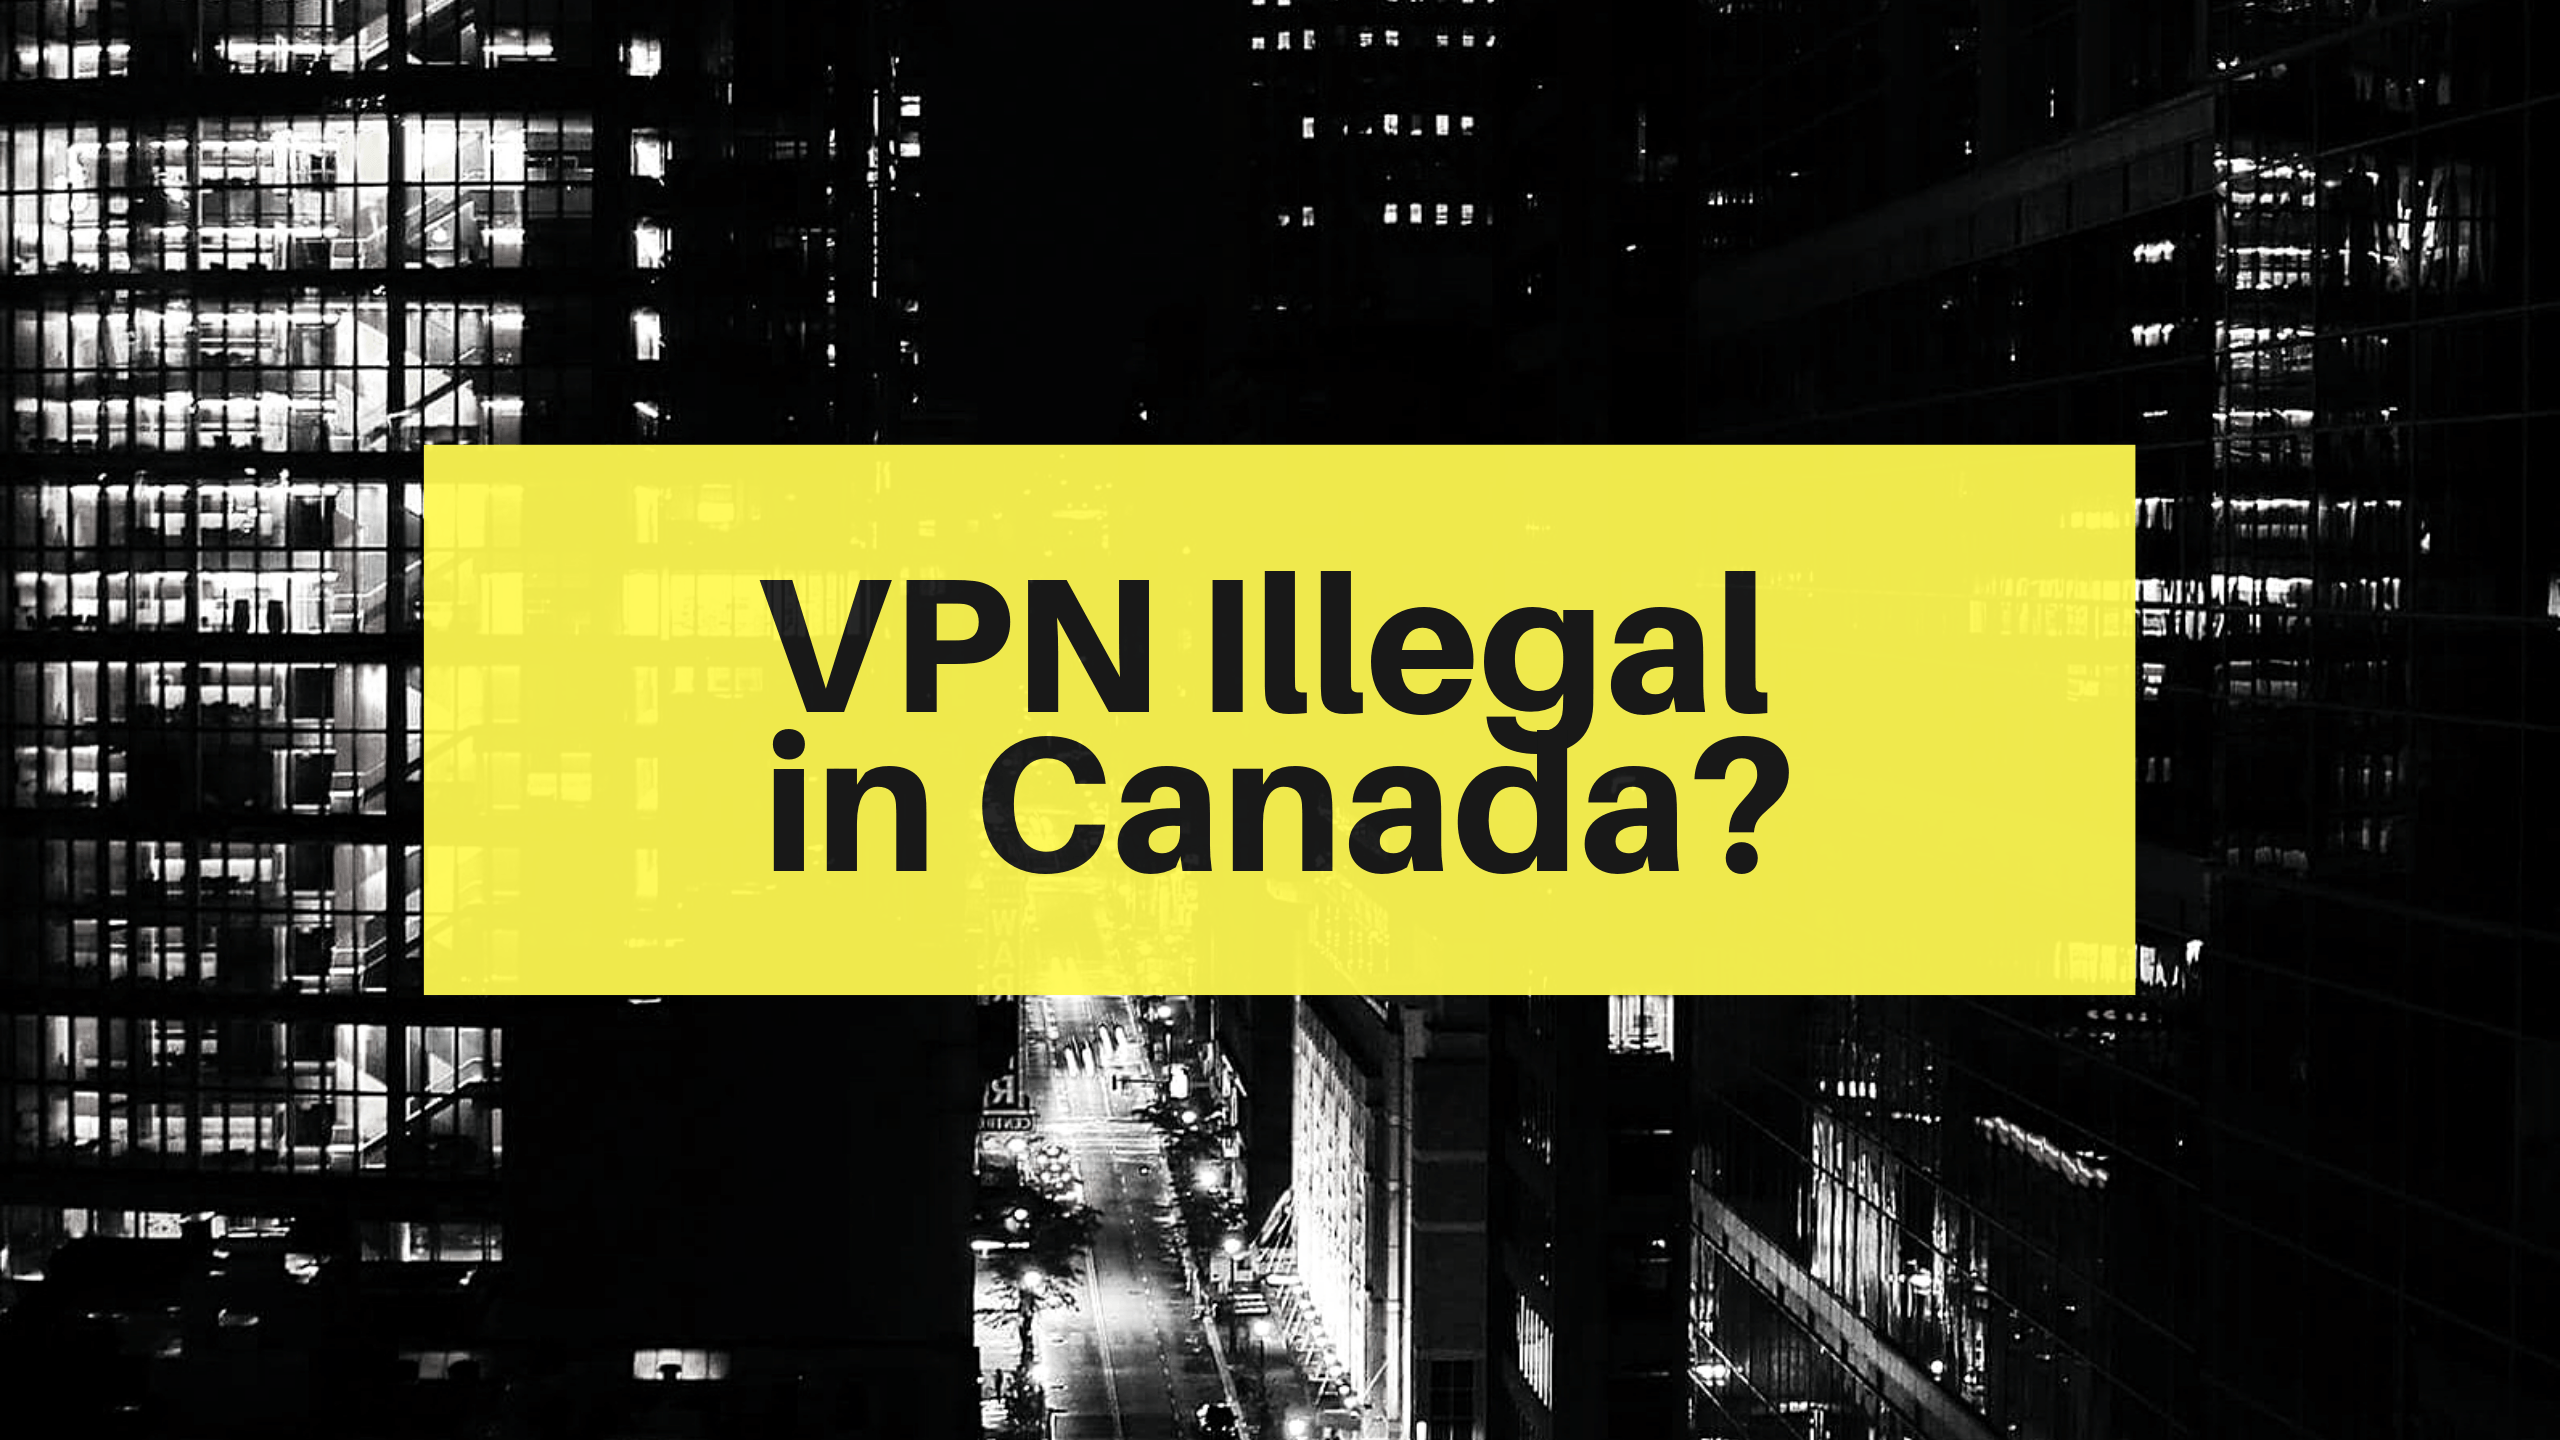 is VPN illegal in canada